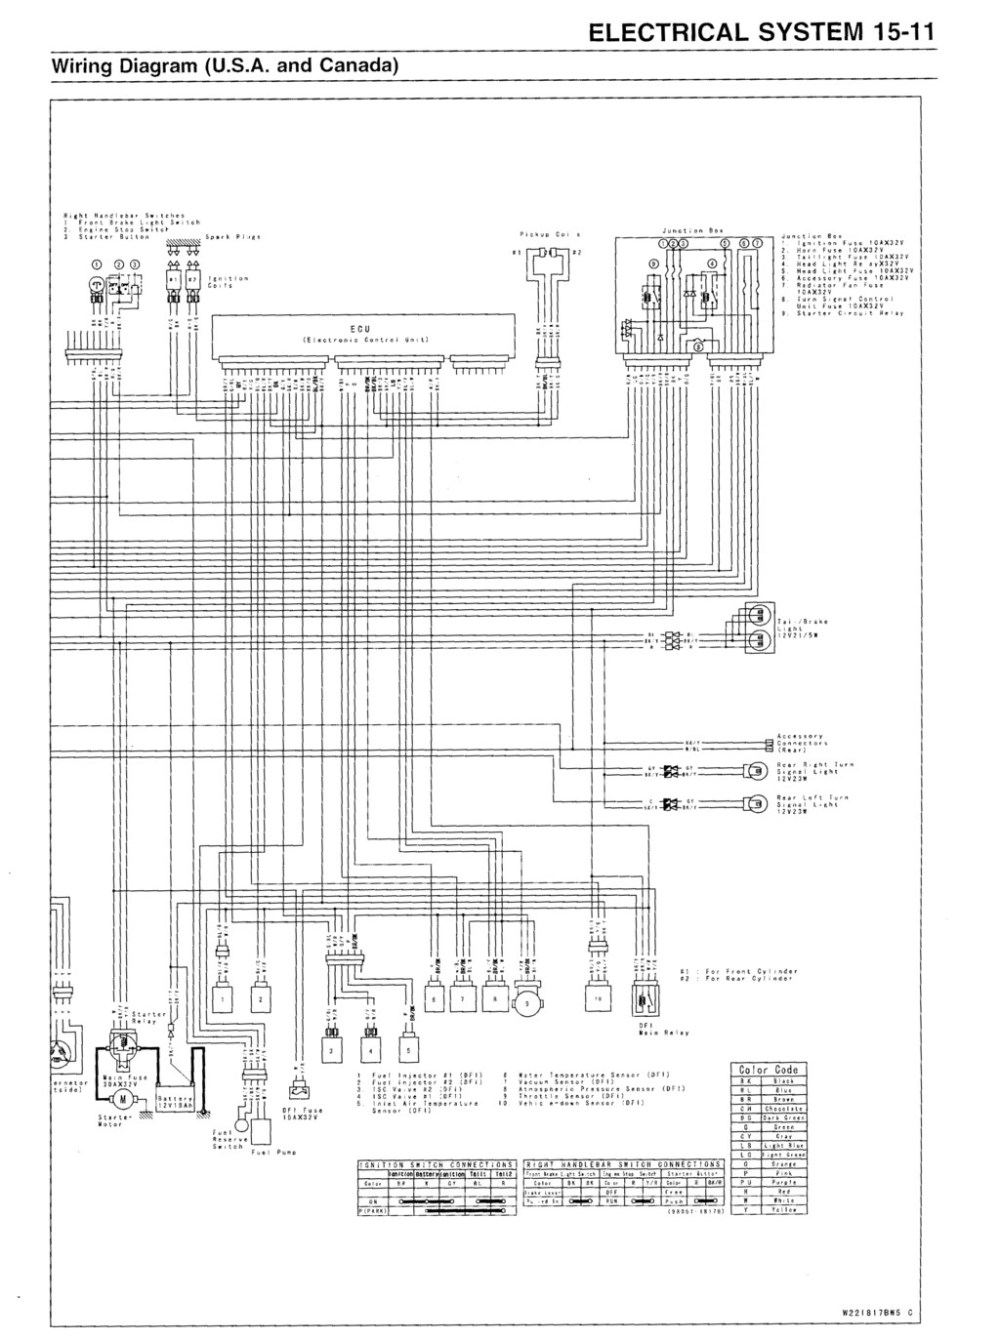 medium resolution of vulcan 1500 wiring diagram wiring diagram database wiring diagram 1992 kawasaki vulcan 1500